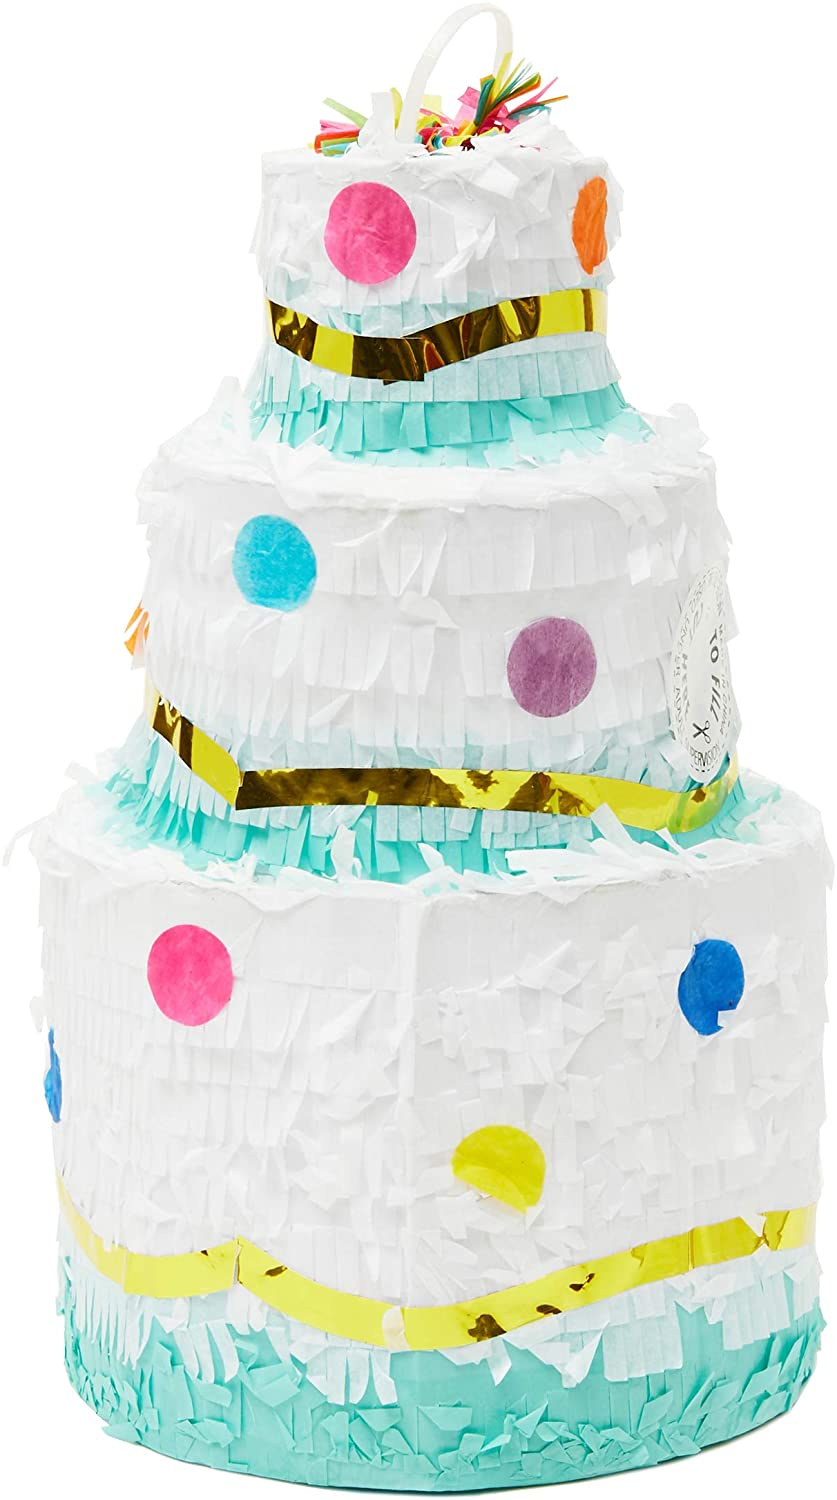 Juvale Small Birthday Cake Pinata, Party Supplies, 7 x 12 Inches